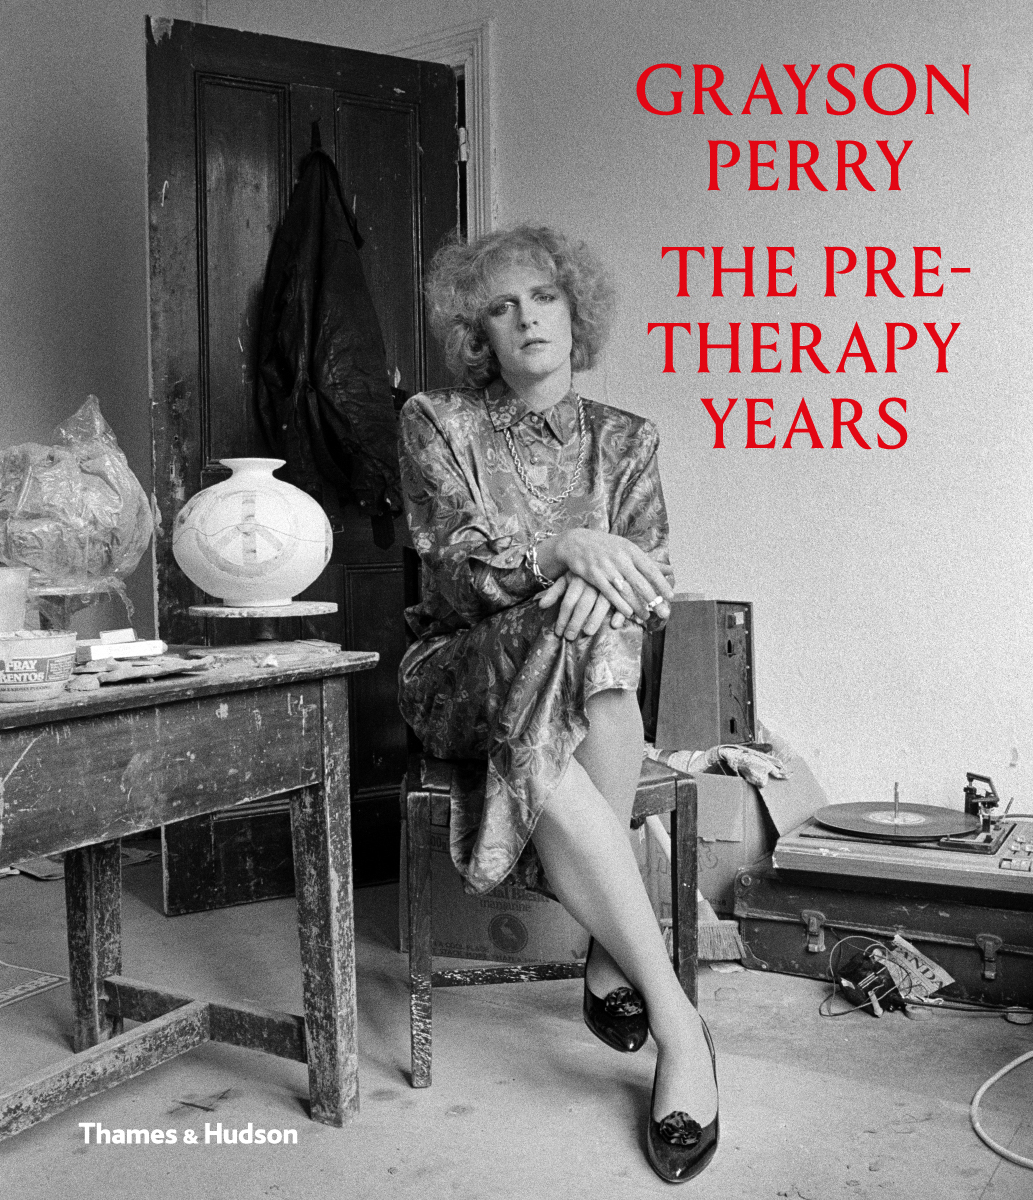 Poster of the exhibition showing Grayson Perry in 1988 dressed as a woman with the title of the exhibition overlayed